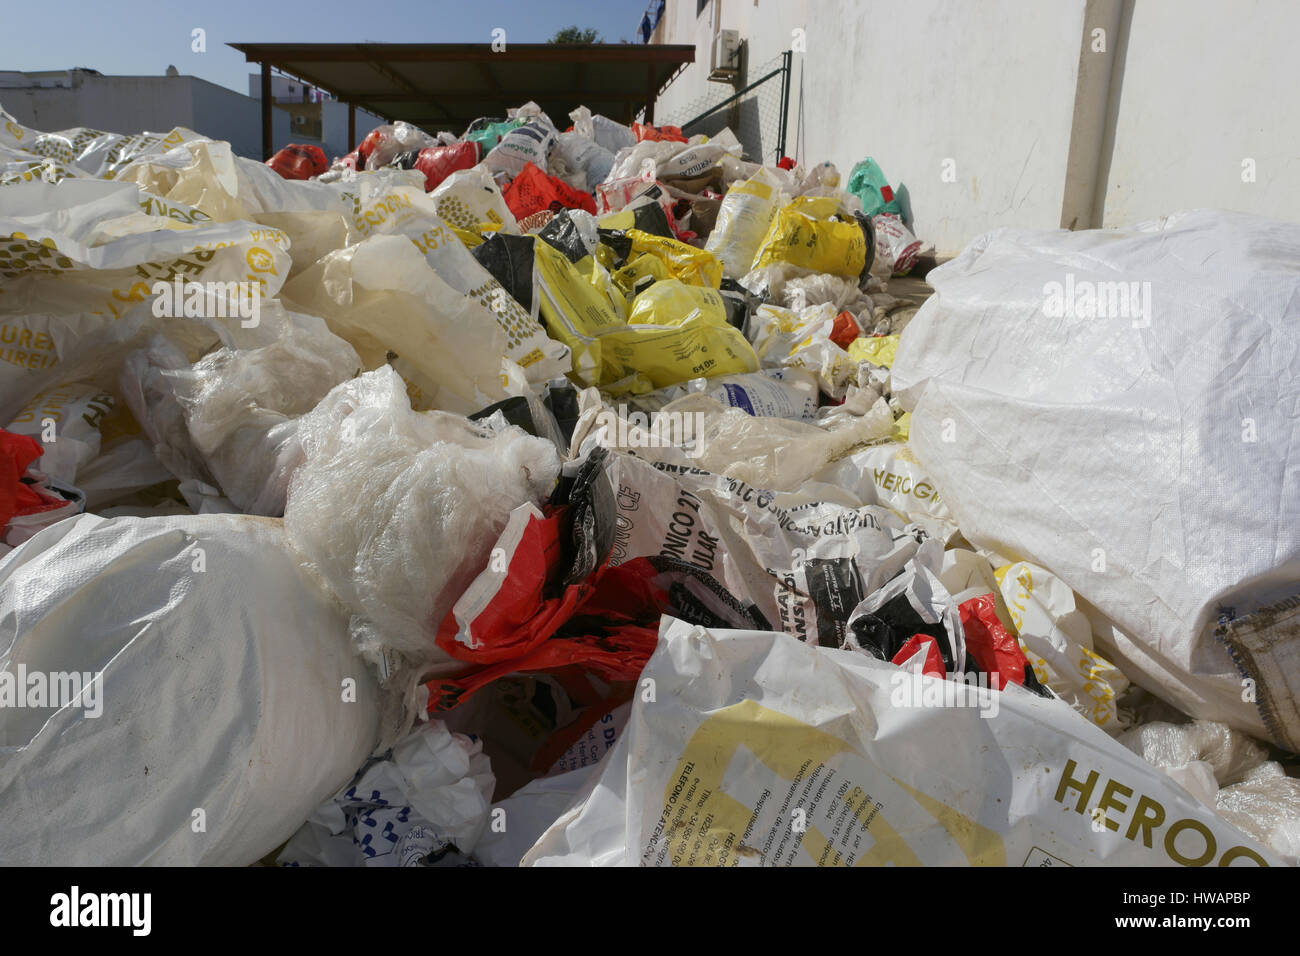 Plastic bags for recycling - Stock Image